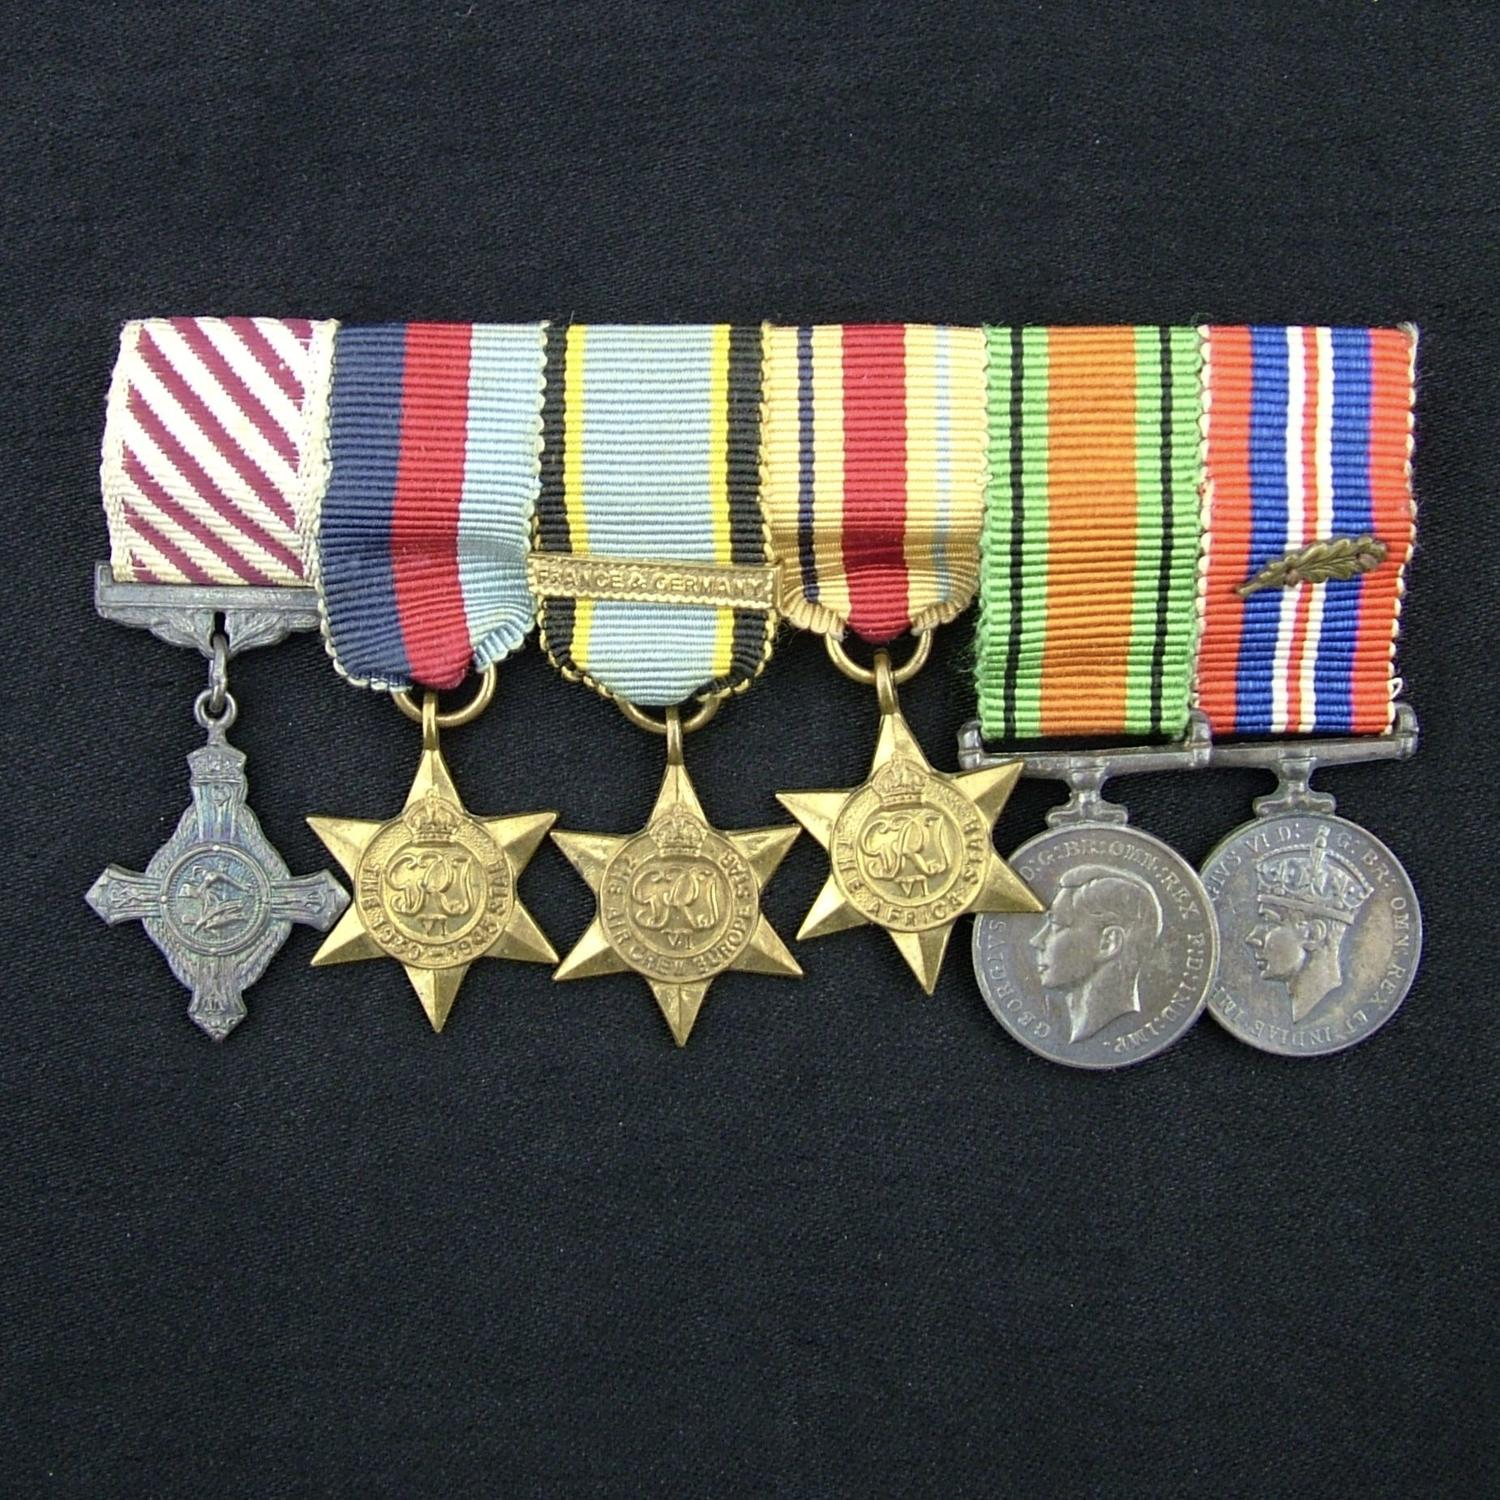 RAF AFC miniature medal grouping